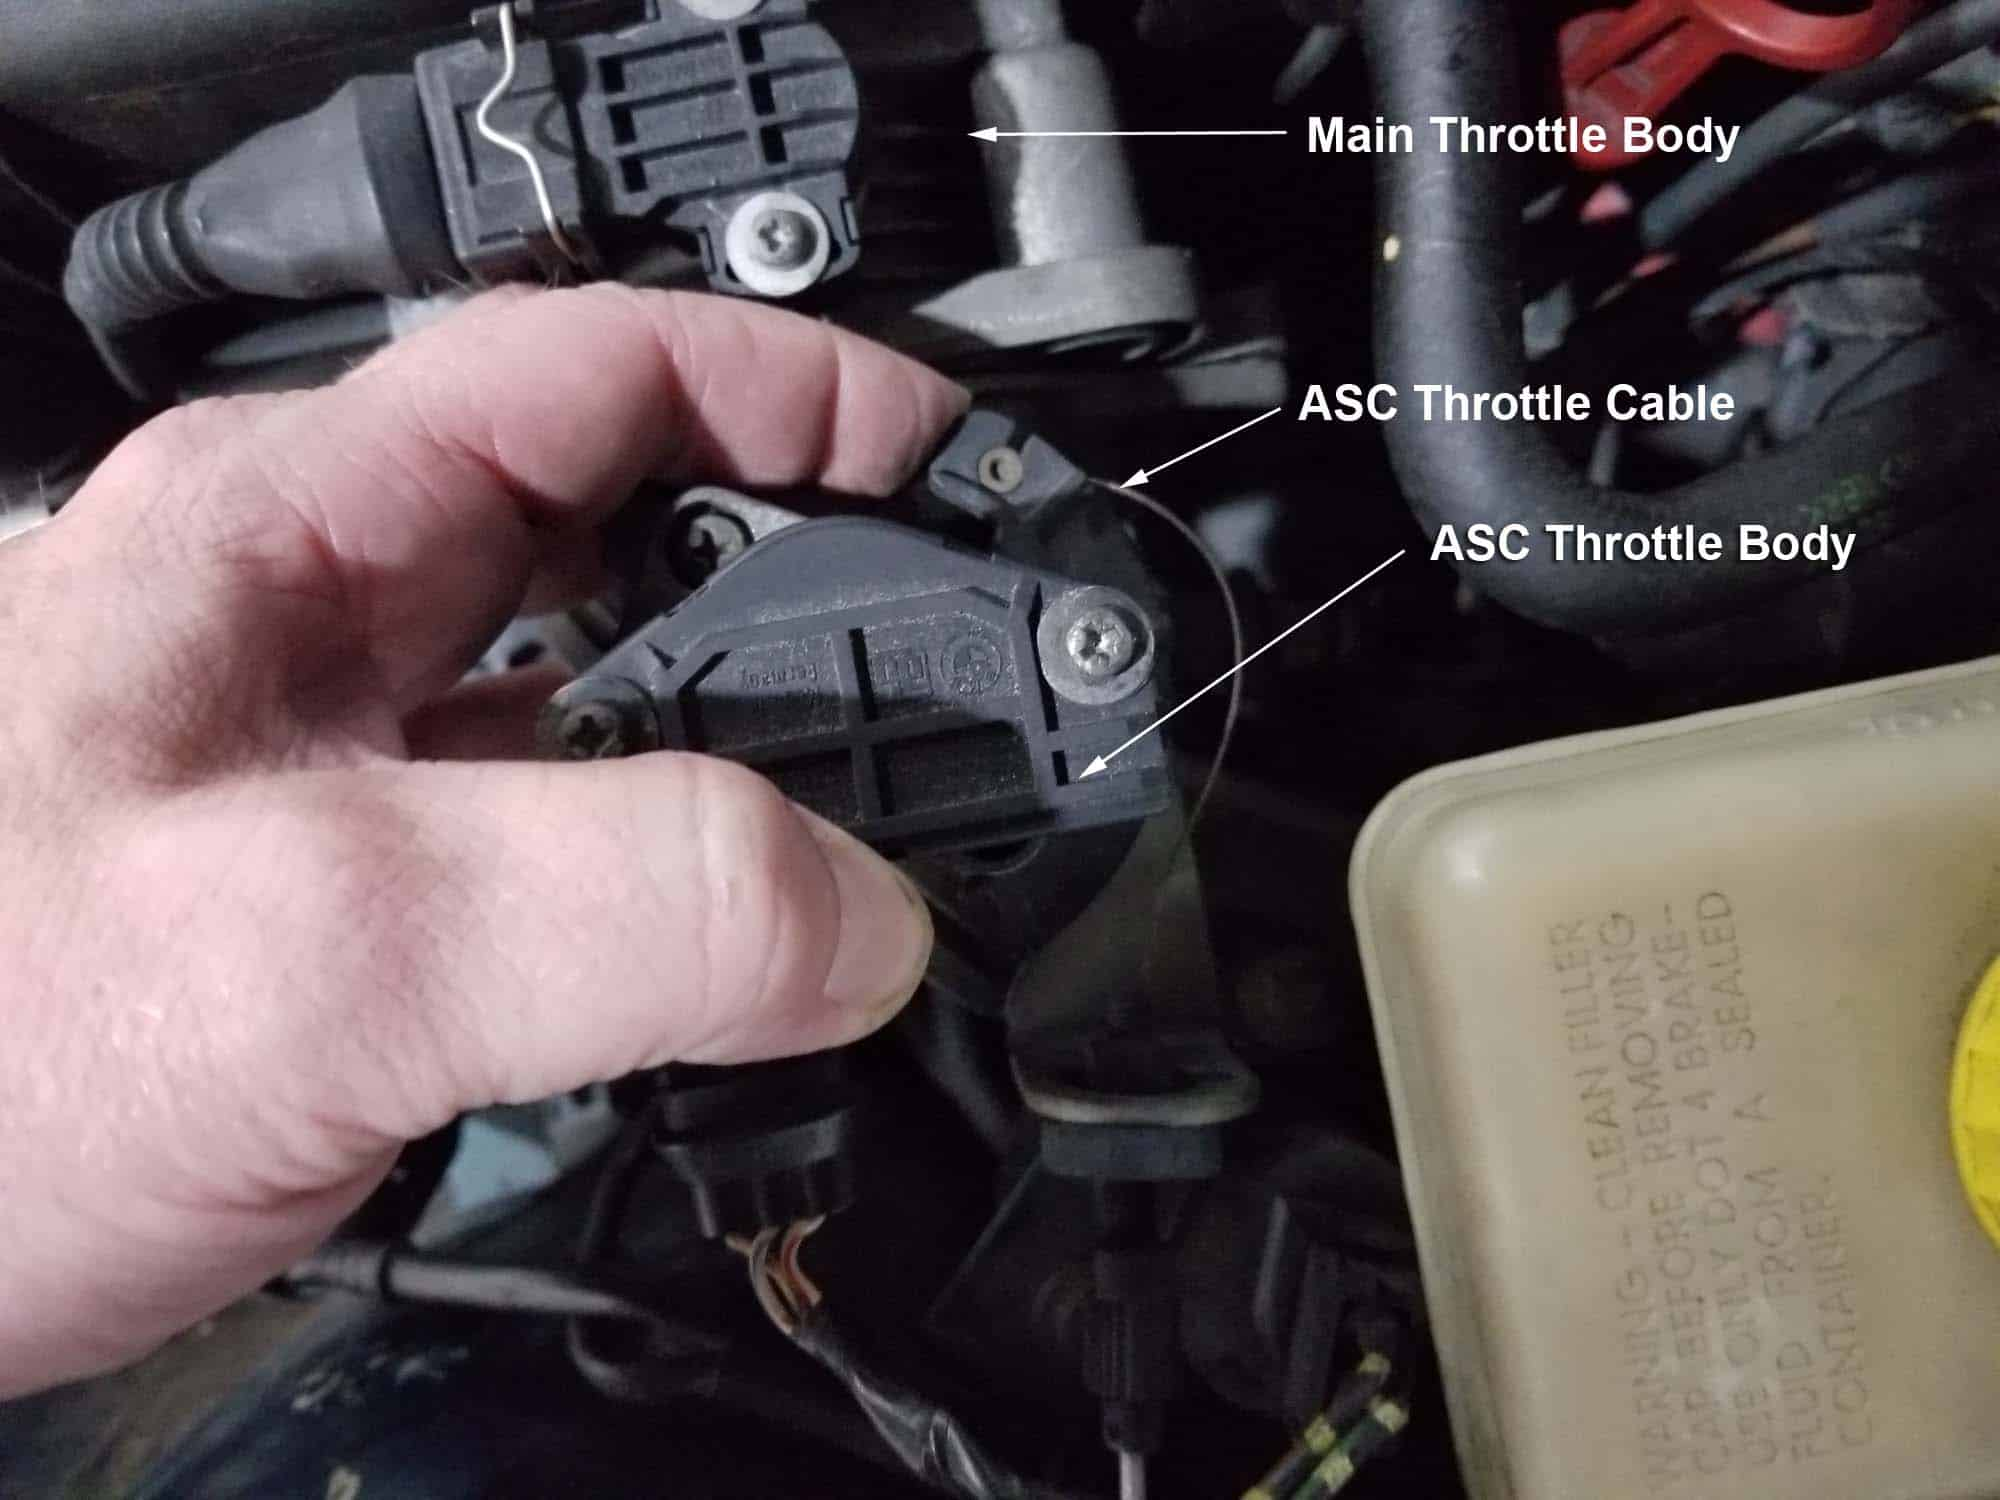 BMW E36 cold air intake - disconnect the ASC throttle cable